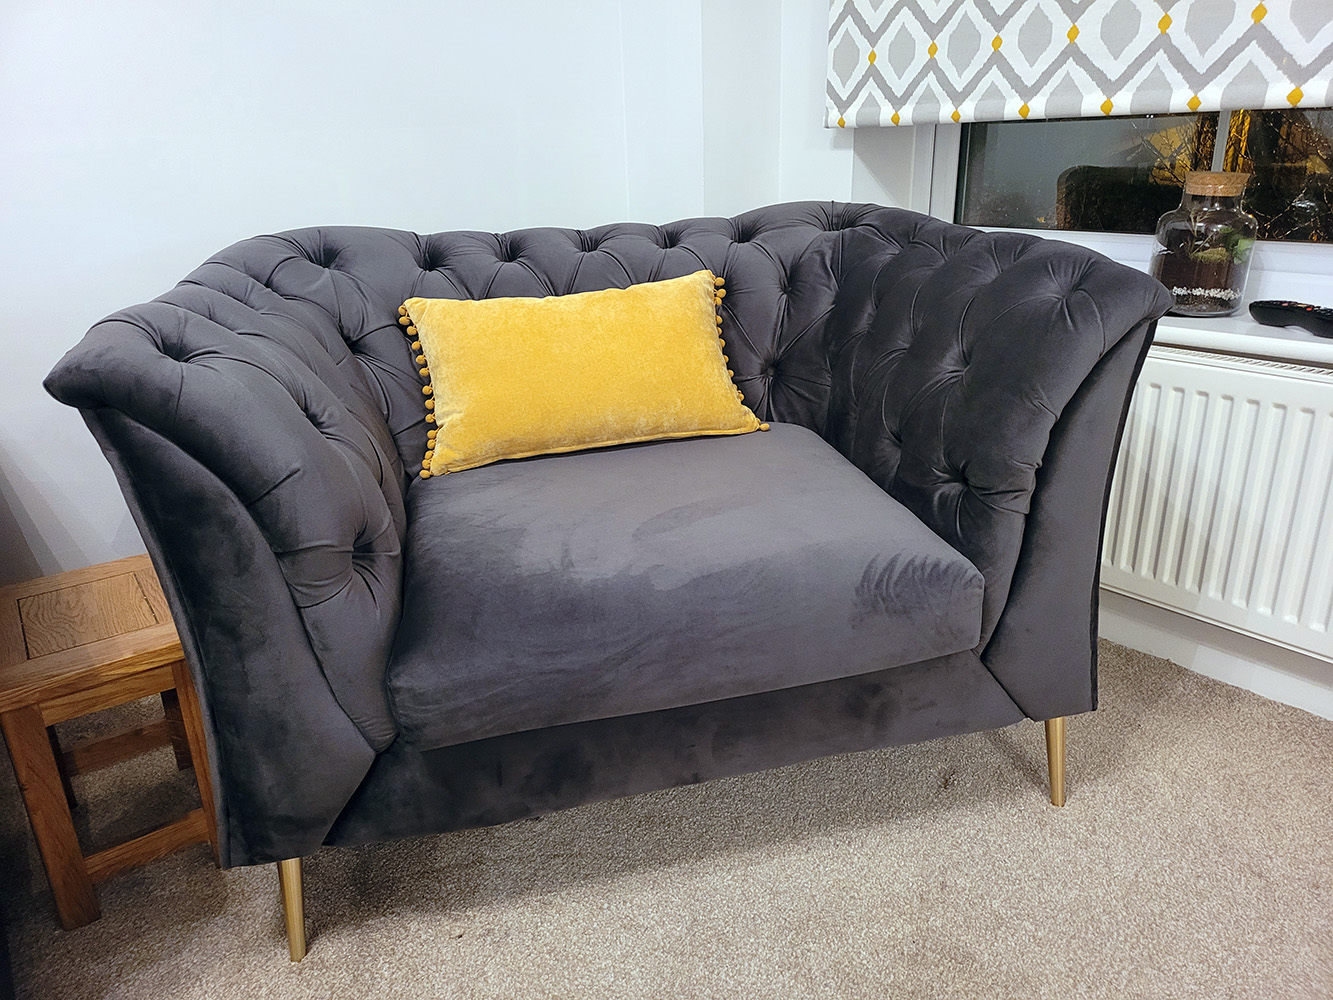 Chesterfield Modern armchair with golden legs from Alex